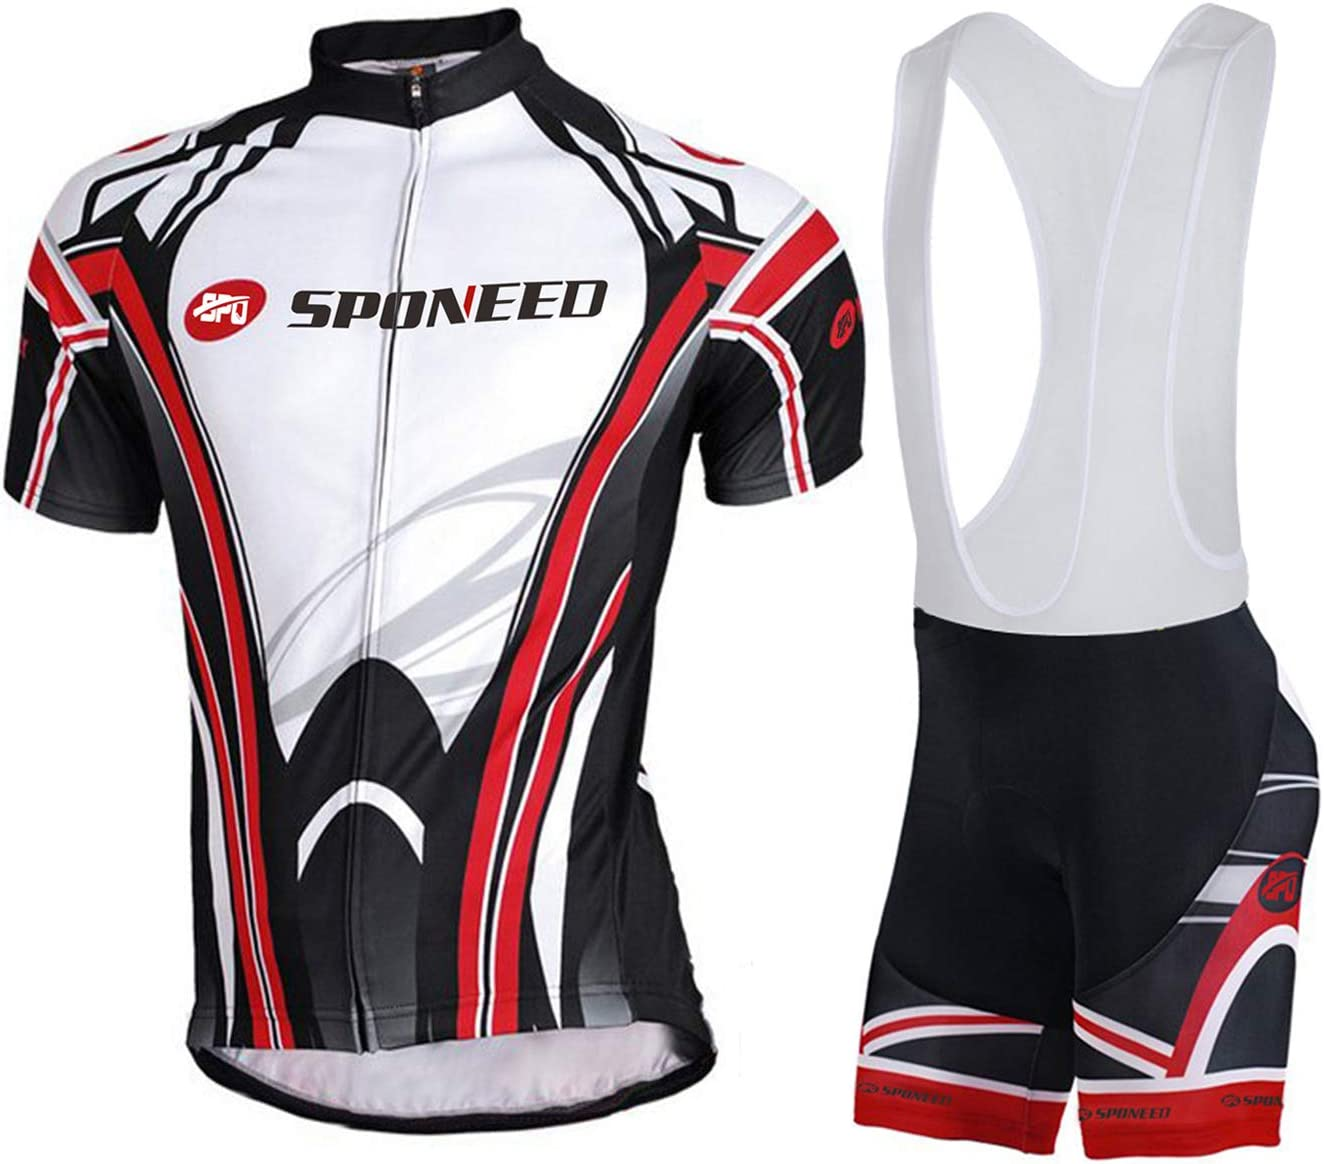 sponeed Men's Shorts Bib and Jersey Cycling Kits Set Road Bike Outdoor Riding Sportswear: Clothing